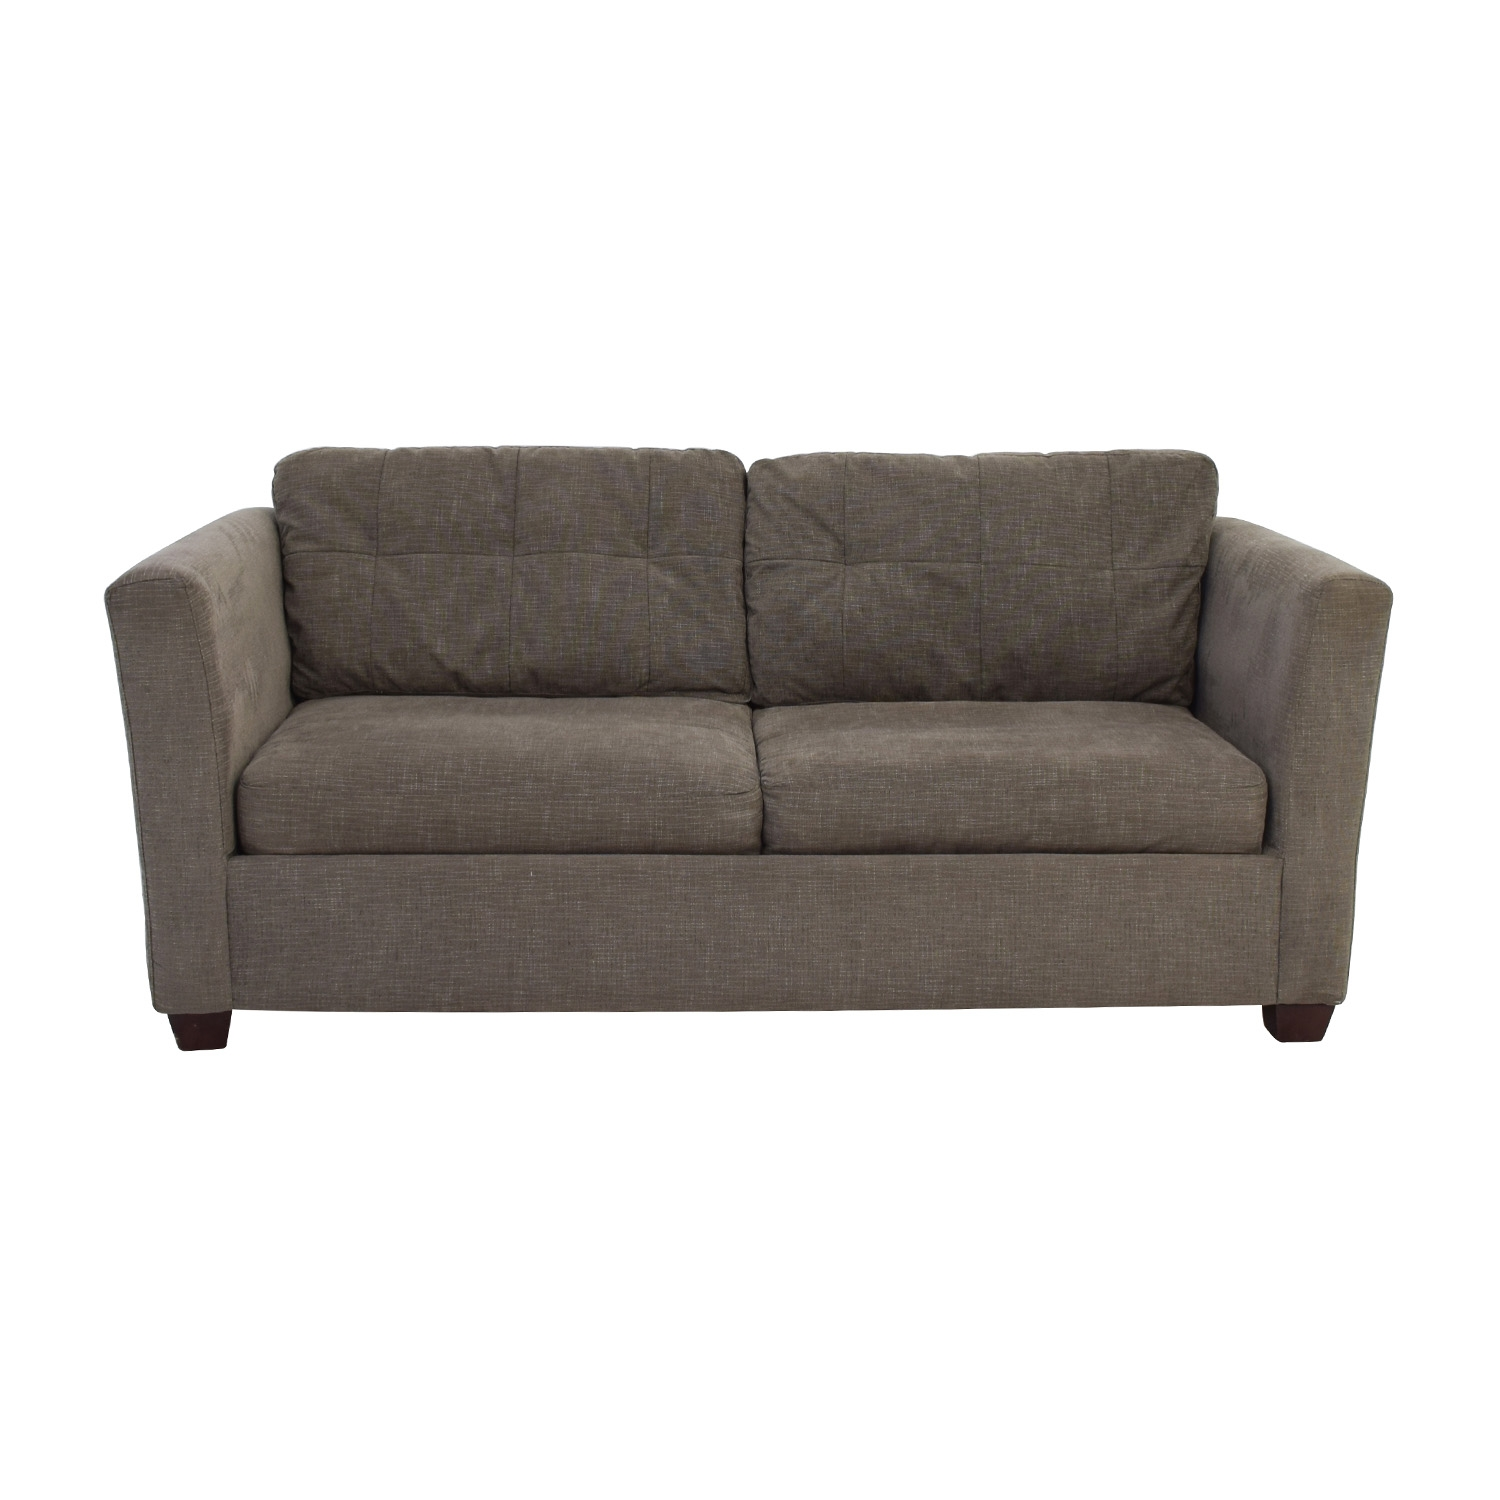 58 Off Bauhaus Bauhaus Grey Queen Sleeper Sofa Sofas Within Bauhaus Sleeper Sofa (View 5 of 15)